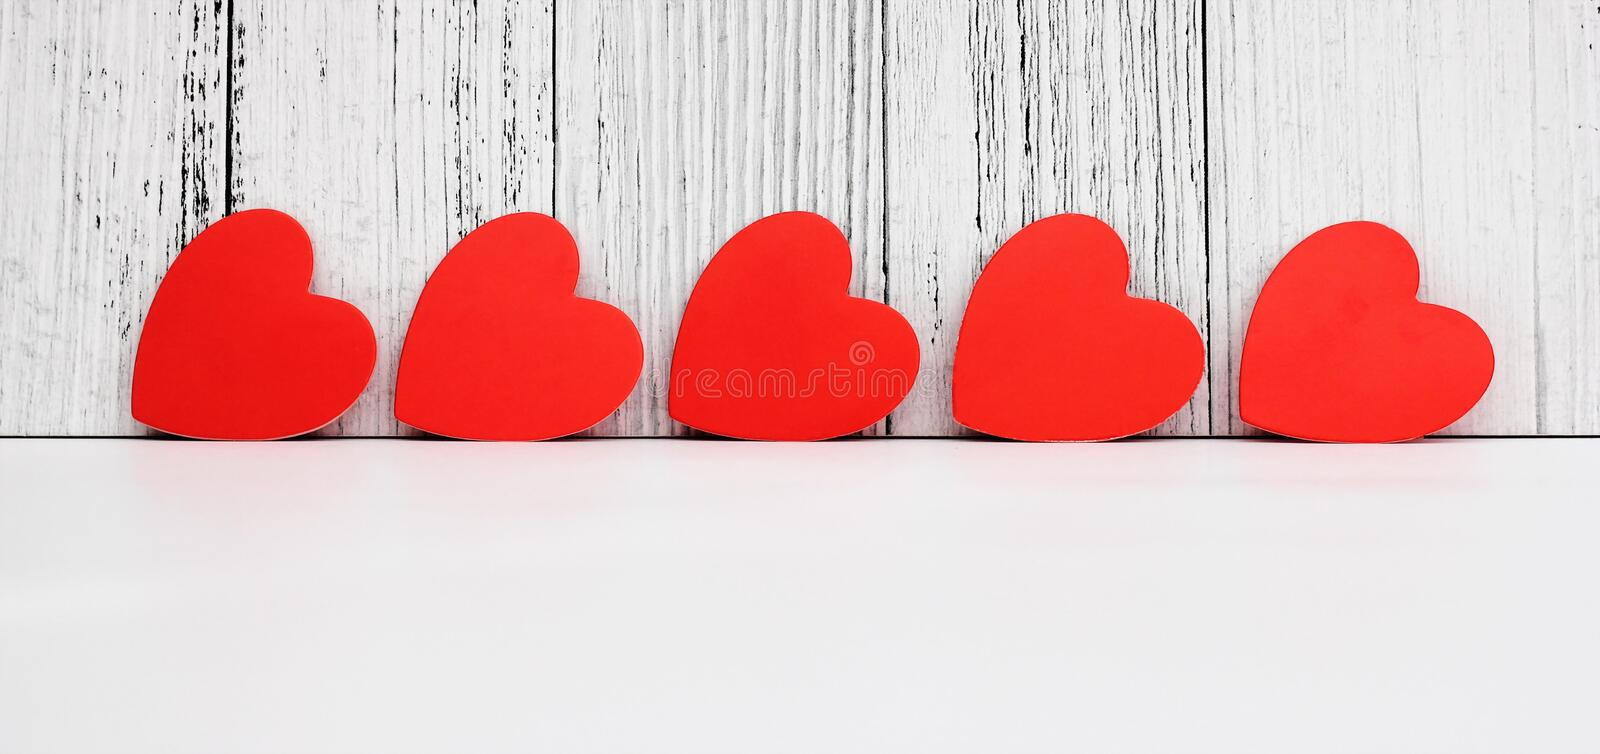 Red cardboard hearts are arranged in a row. Design and decoration for Valentine`s Day. concept of love. Copy Space royalty free stock photos